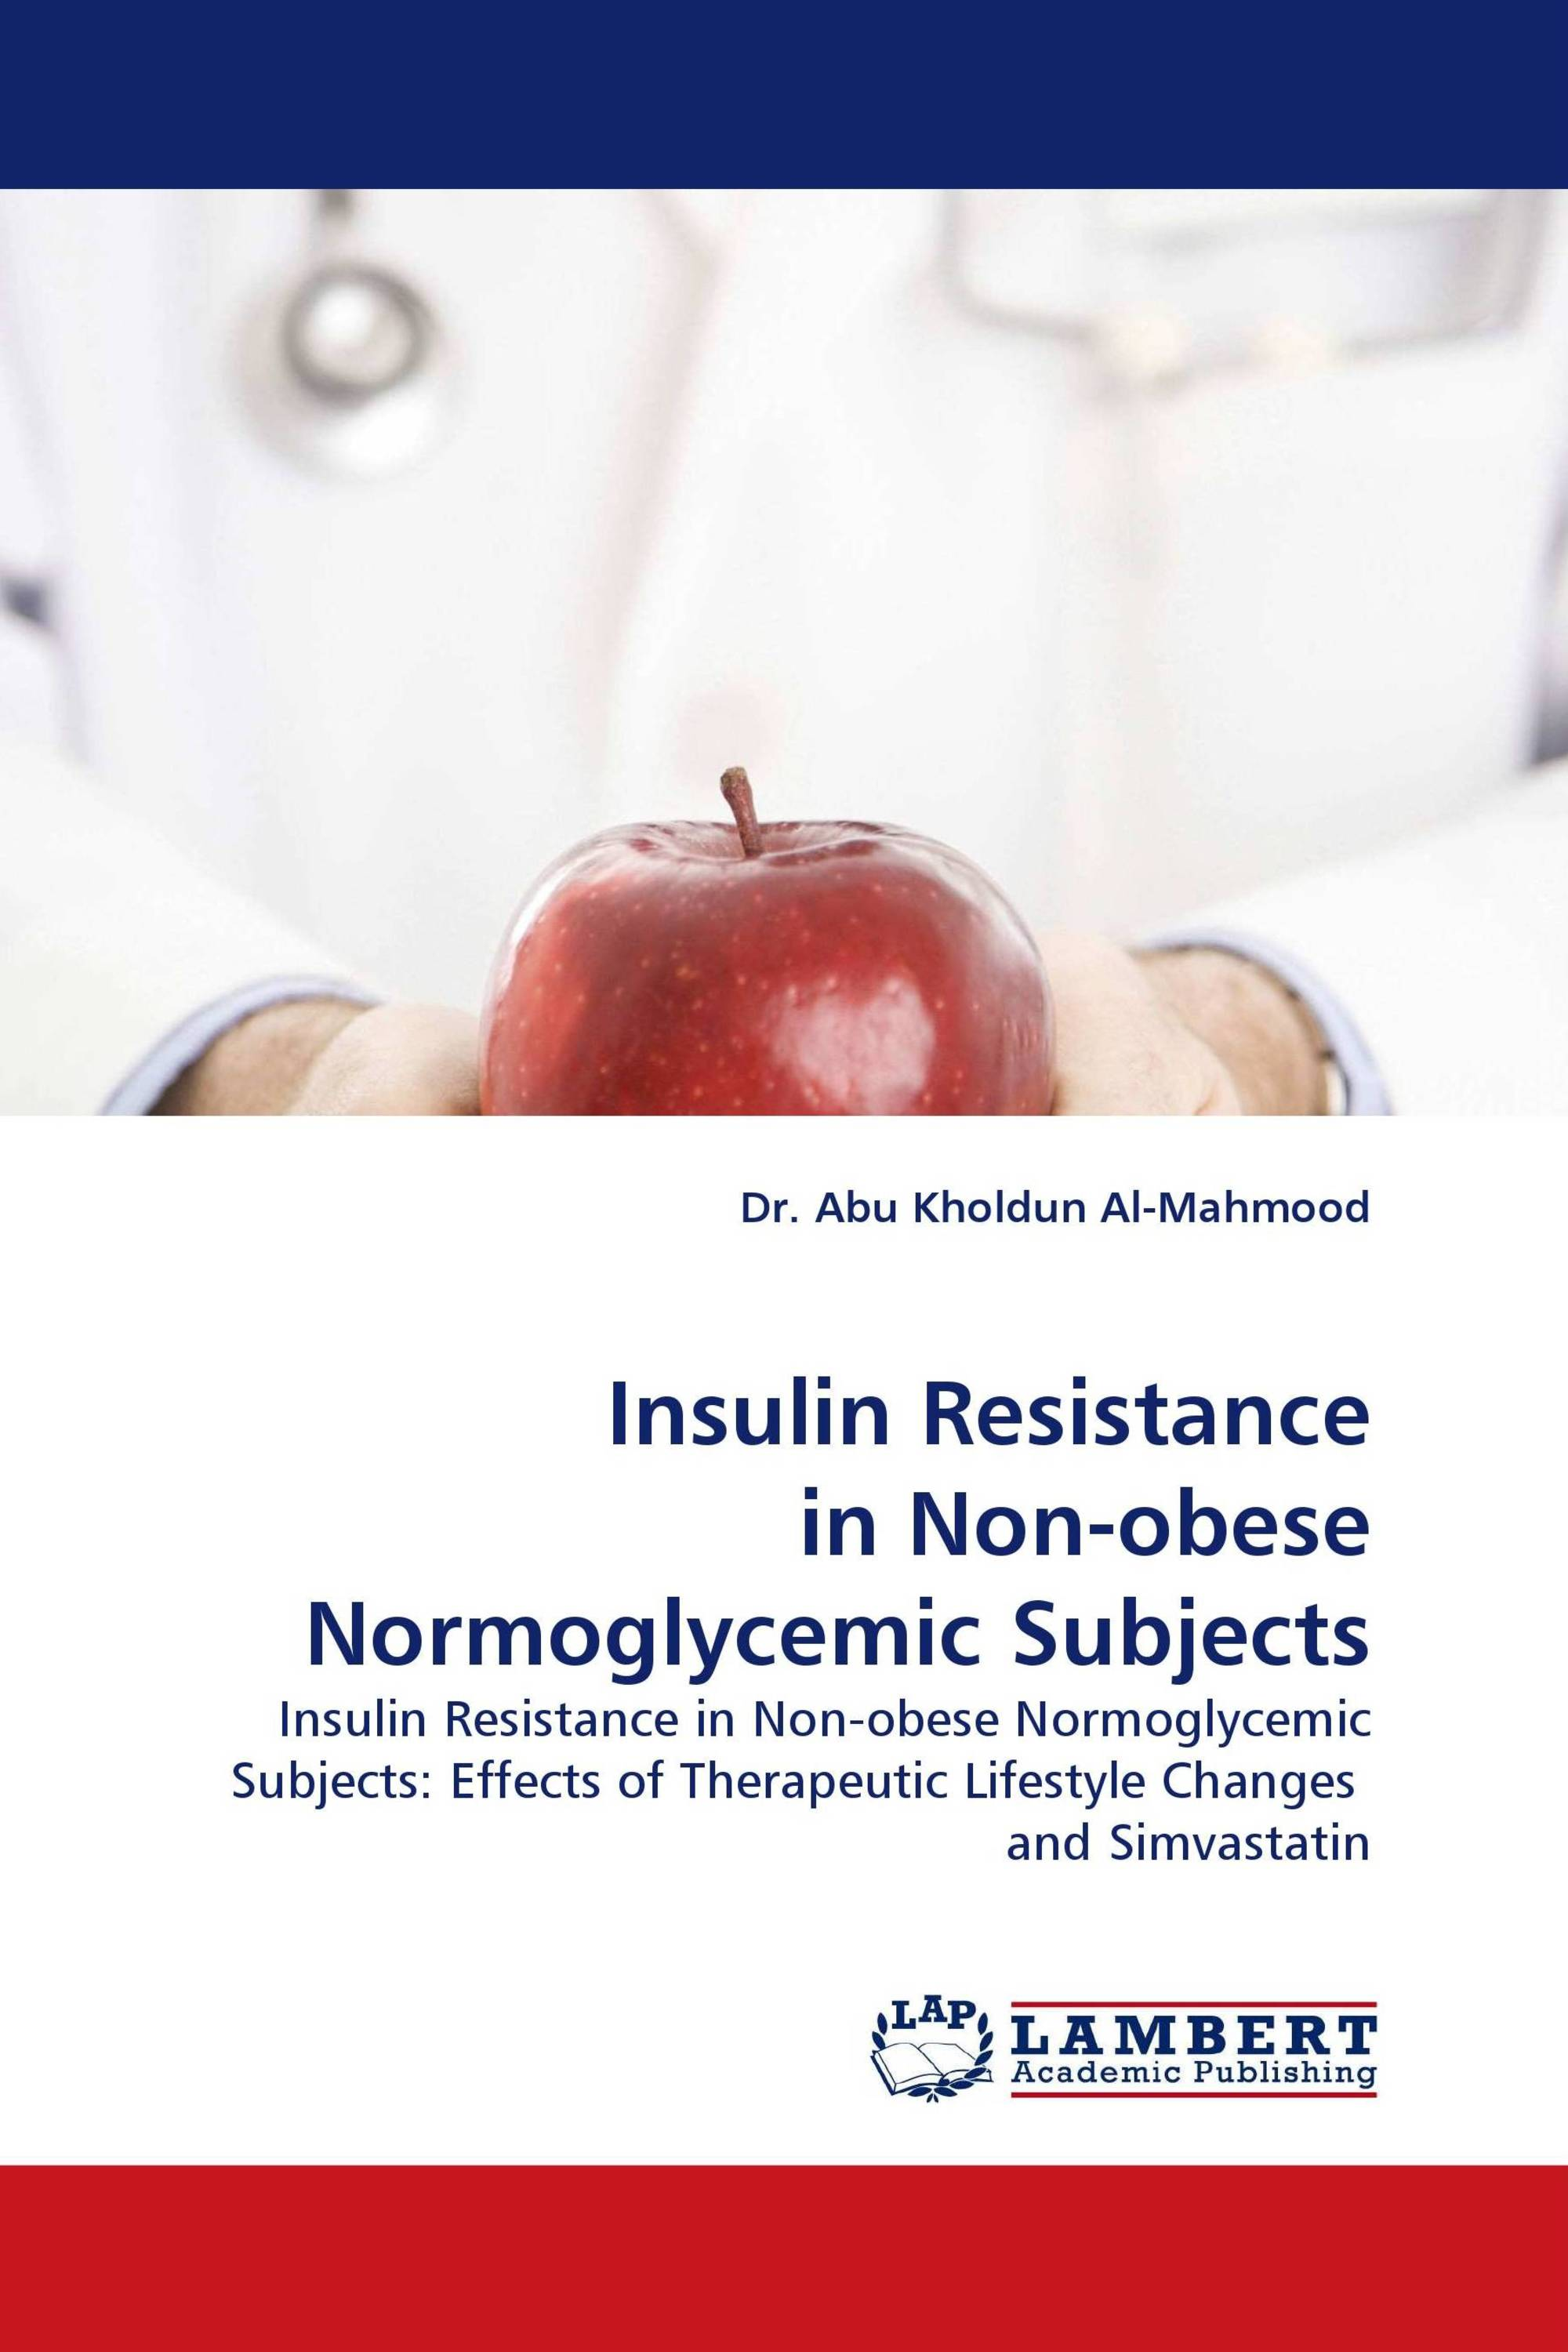 how to find out if i am insulin resistant